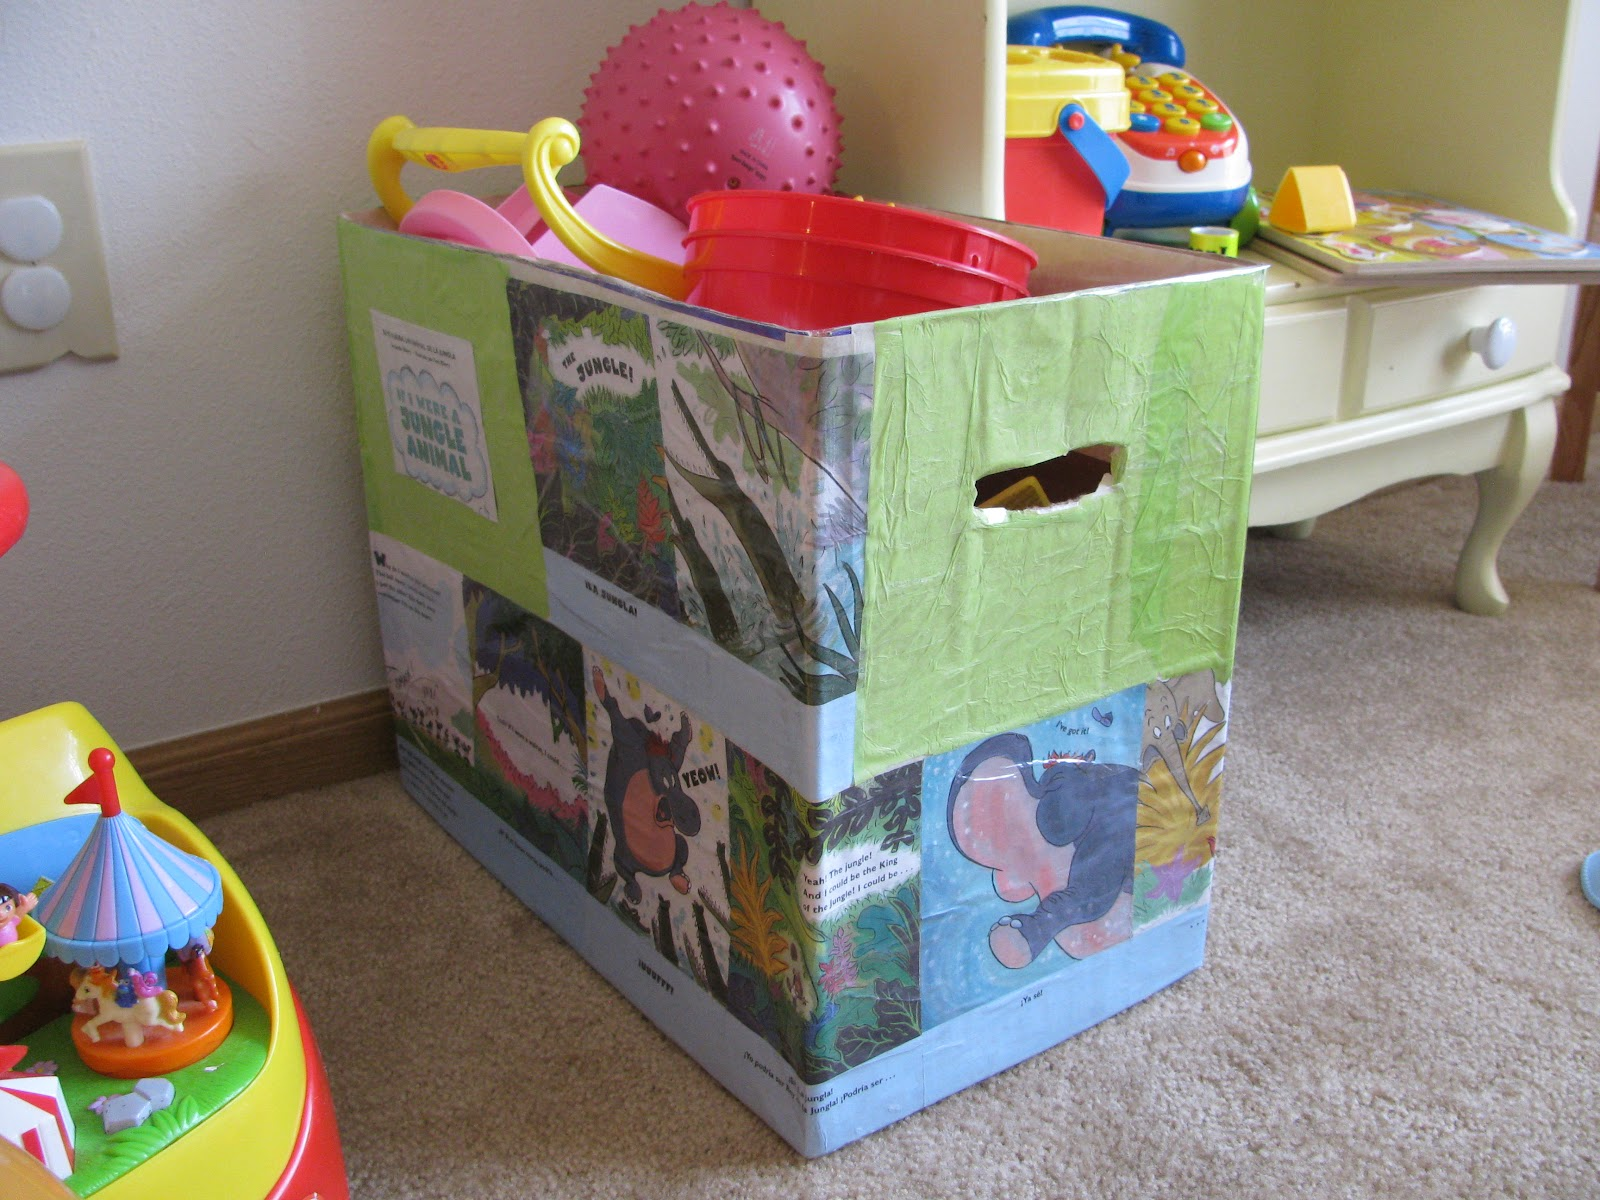 Cover diaper boxes with colorful paper for free toy storage.